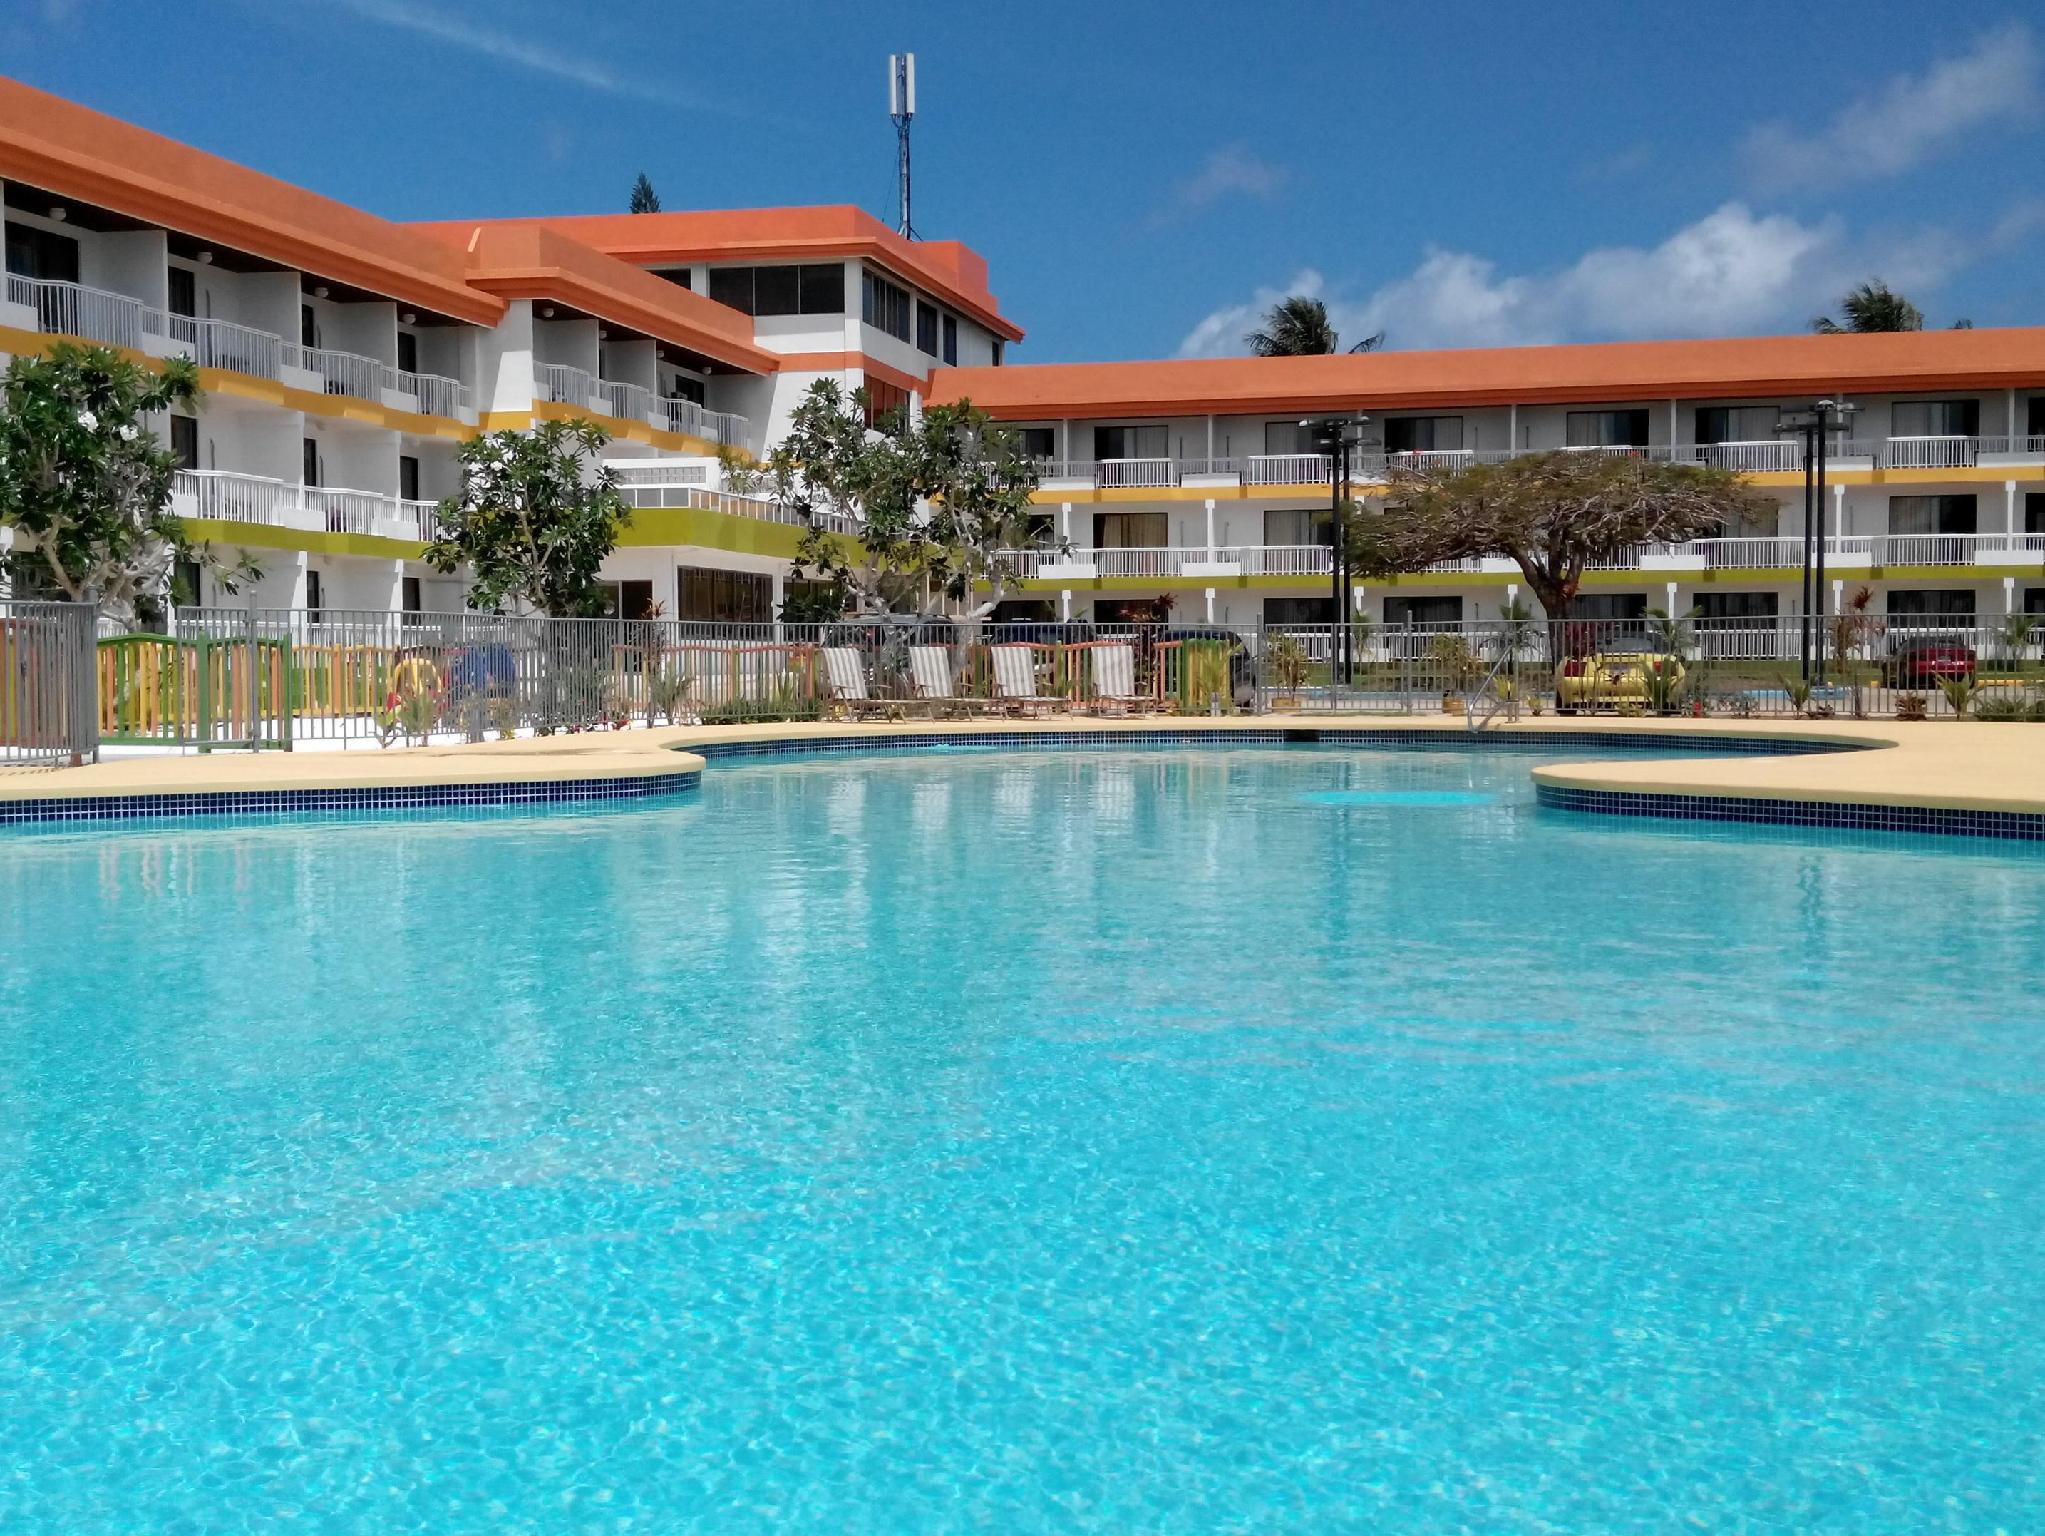 Mango Resort Saipan - Hotels and Accommodation in Northern Mariana Islands, Pacific Ocean And Australia